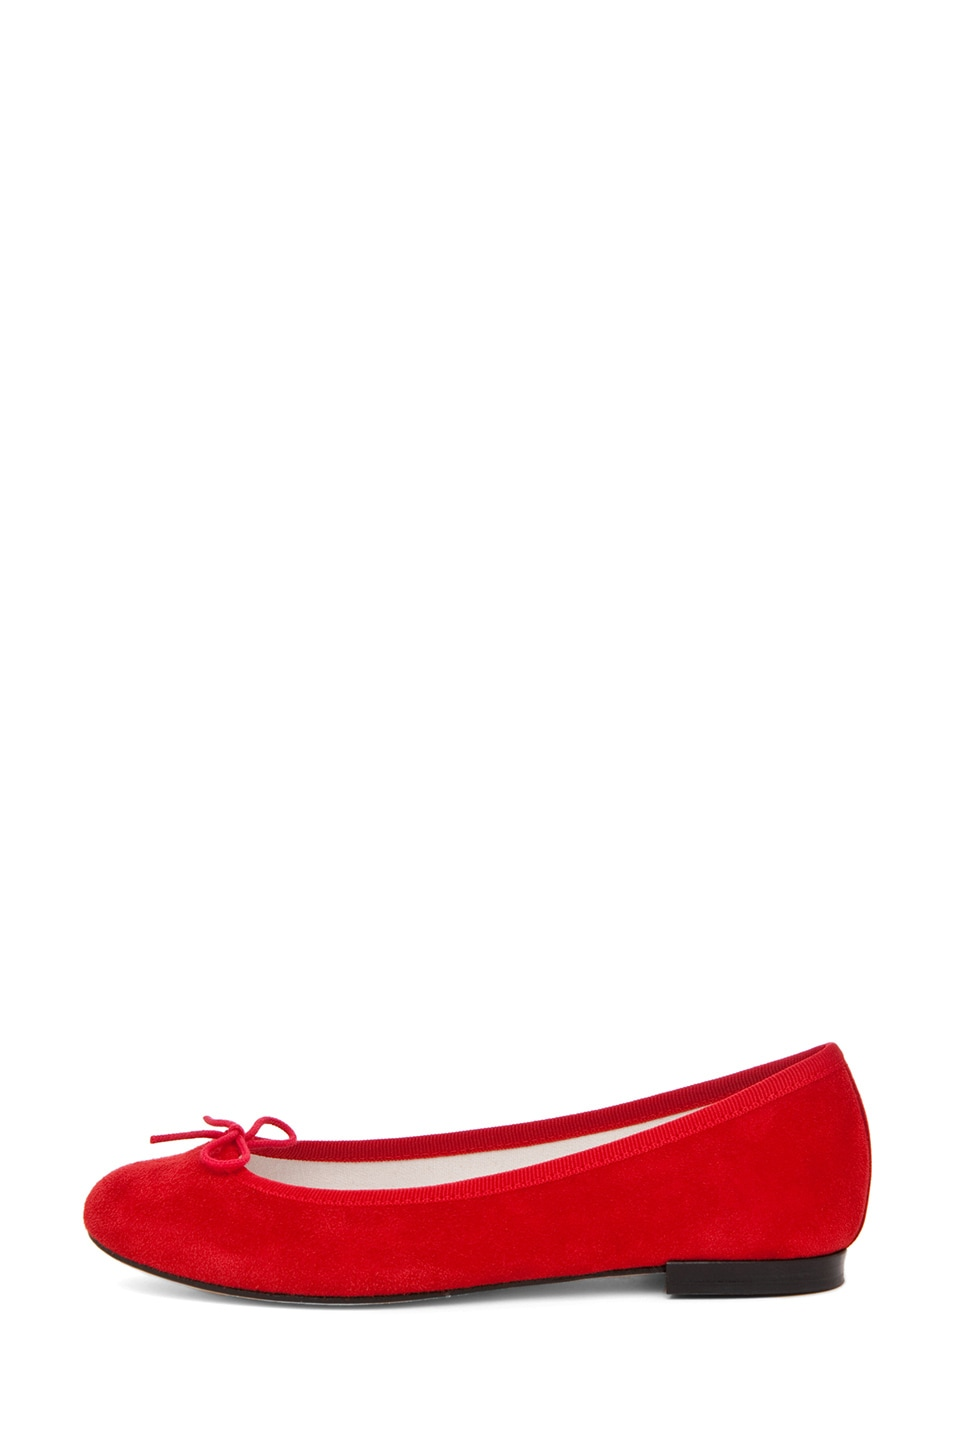 Image 1 of Repetto Suede Flat in Red